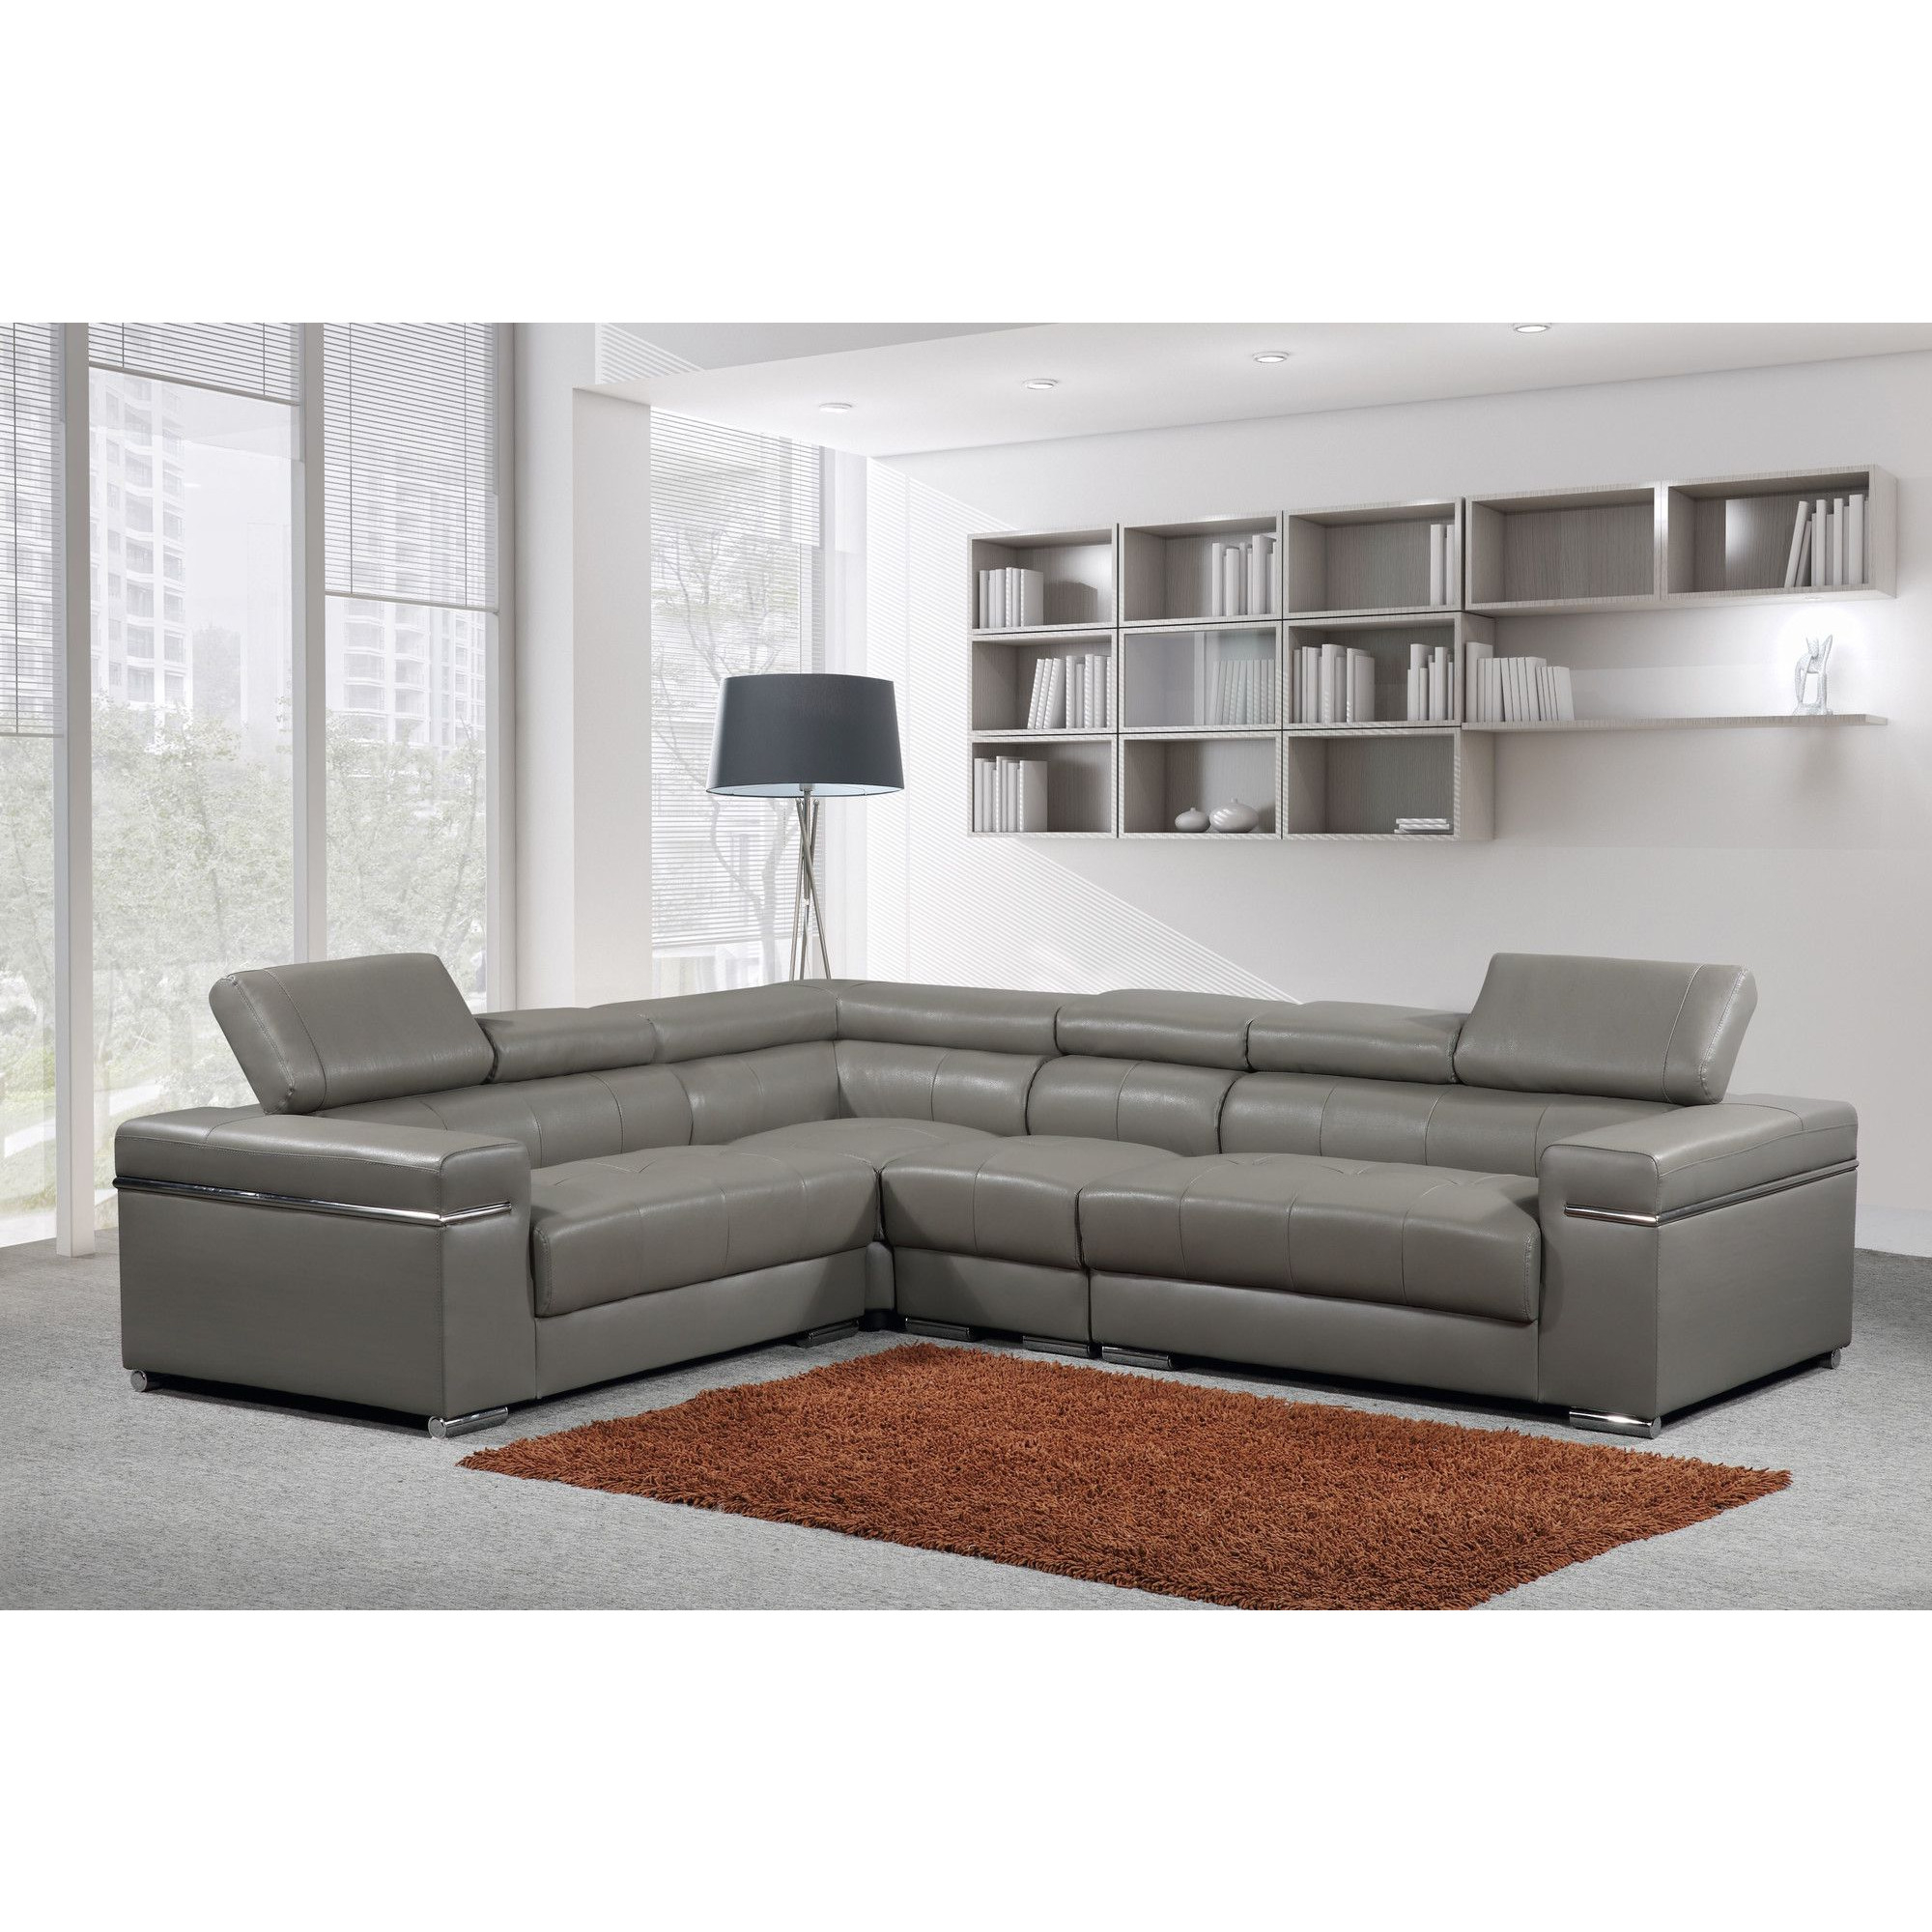 Salon canape dangle gris forium